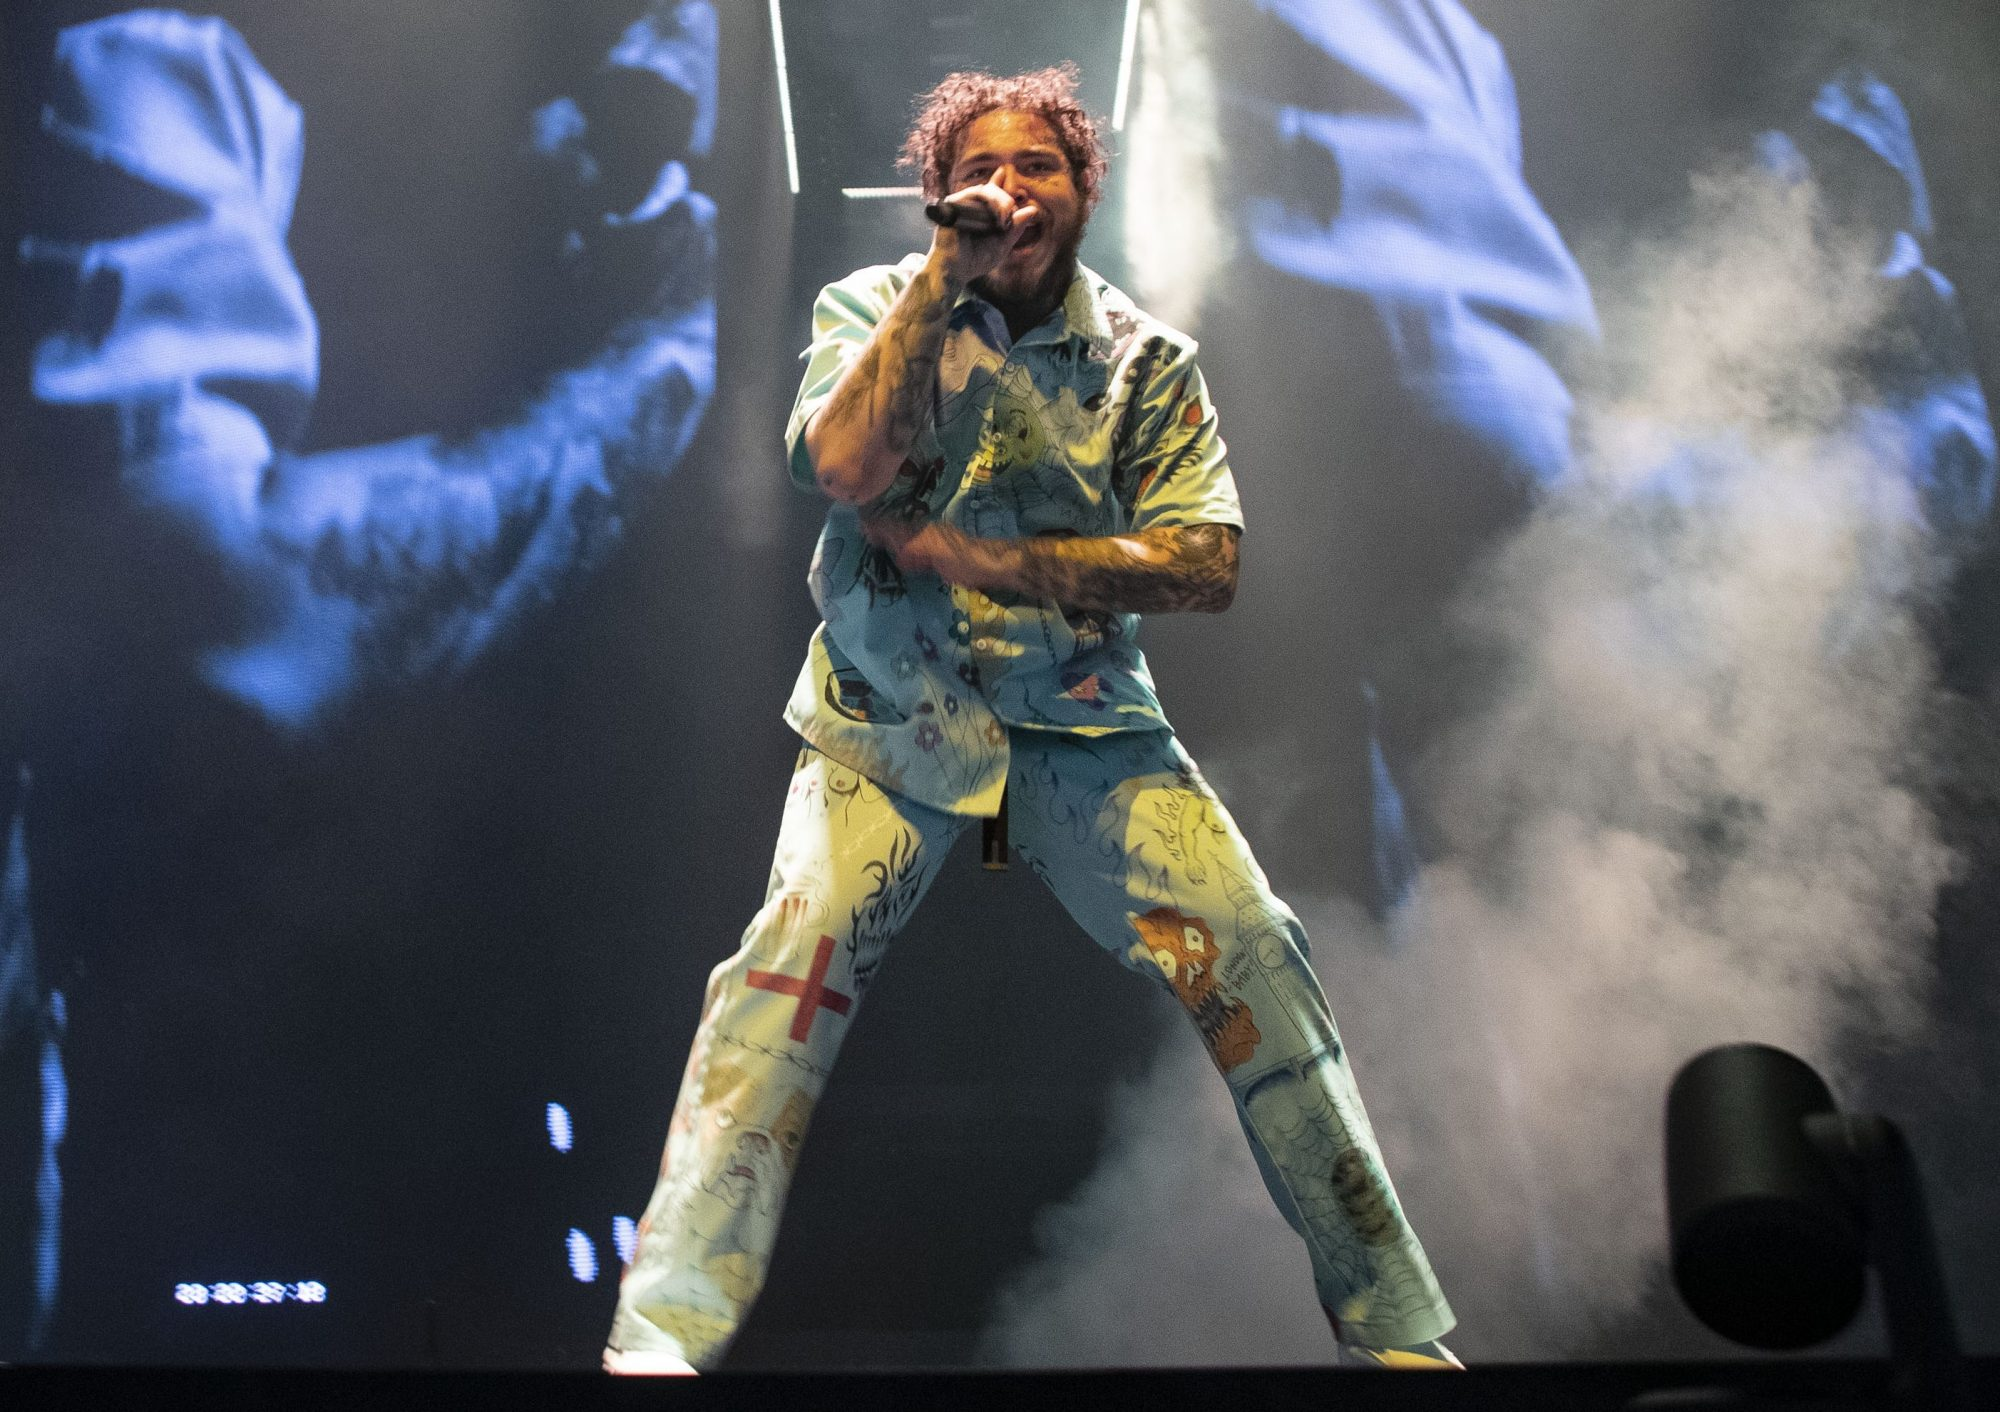 Post Malone At The O2 Arena